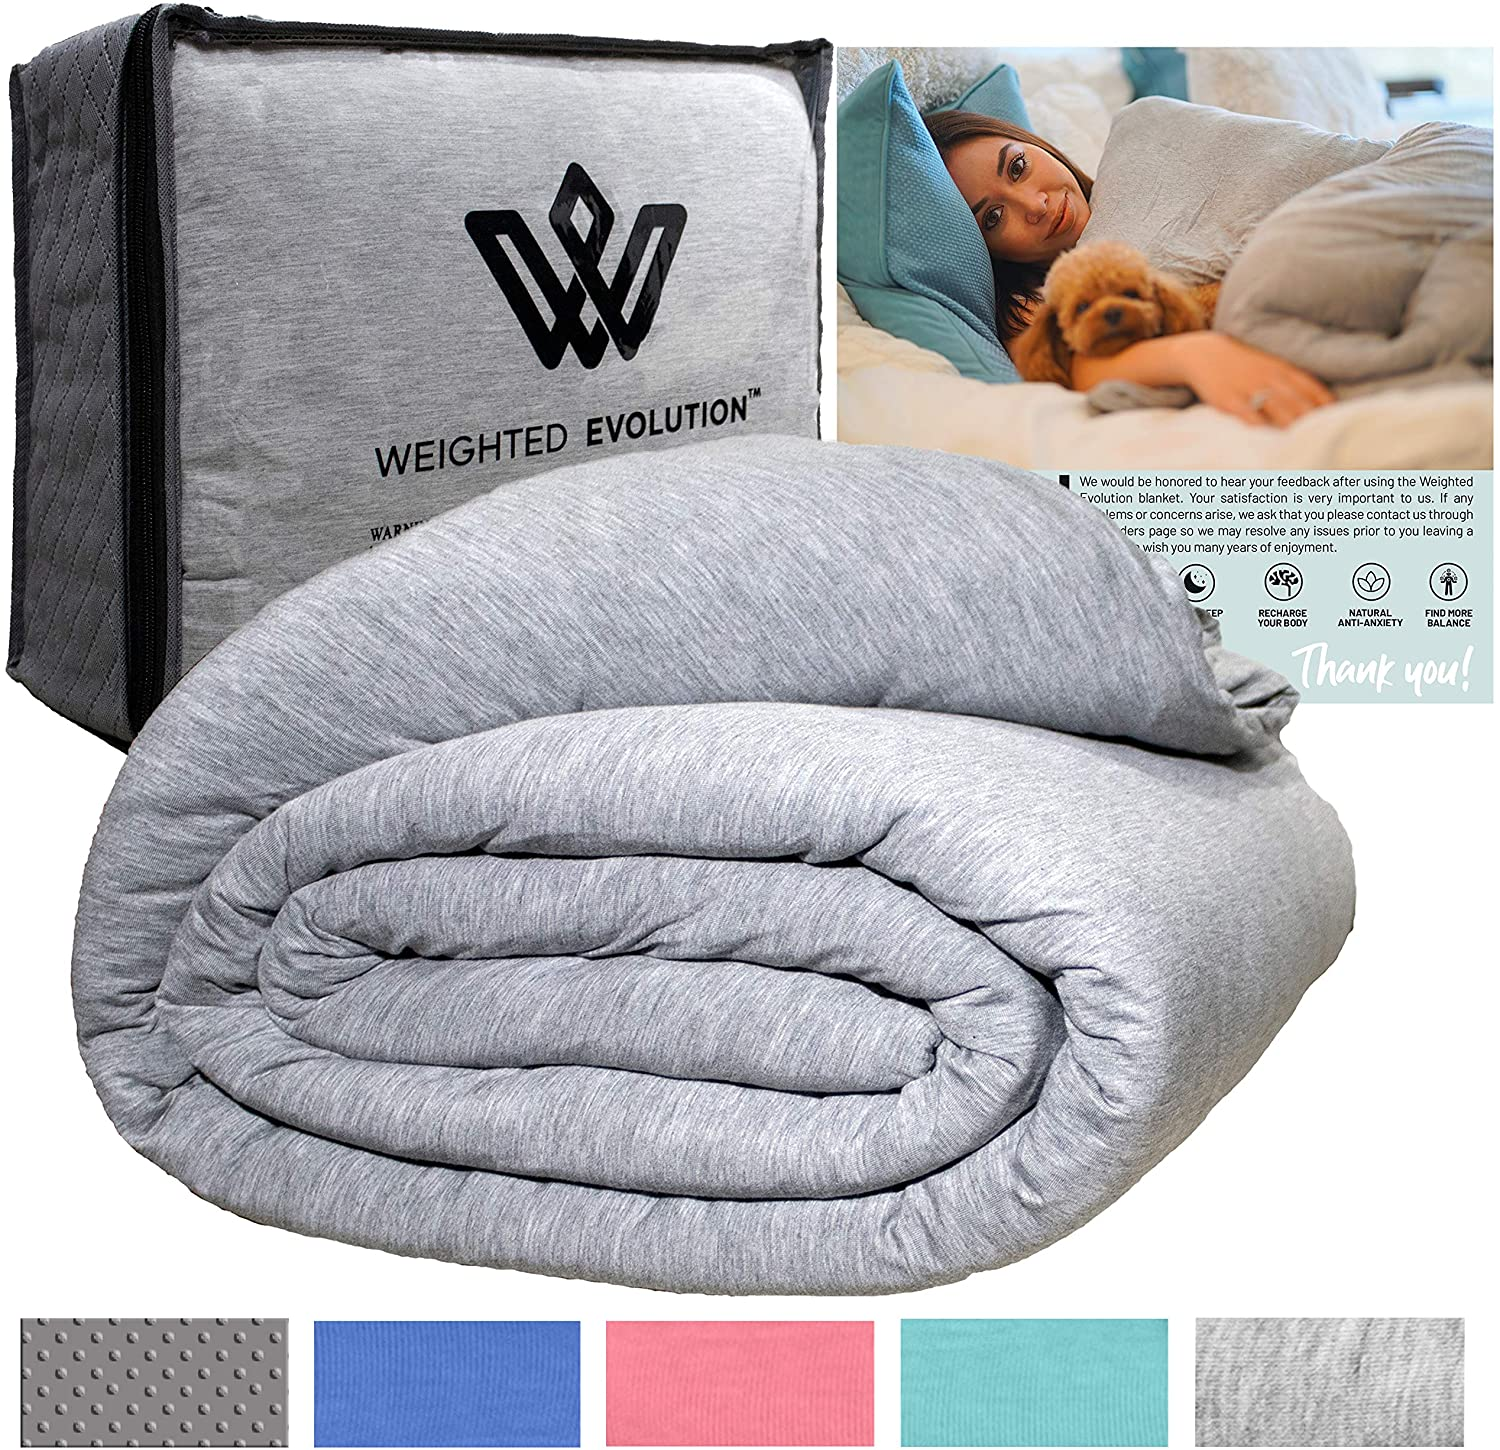 Weighted Evolution Weighted Blanket+